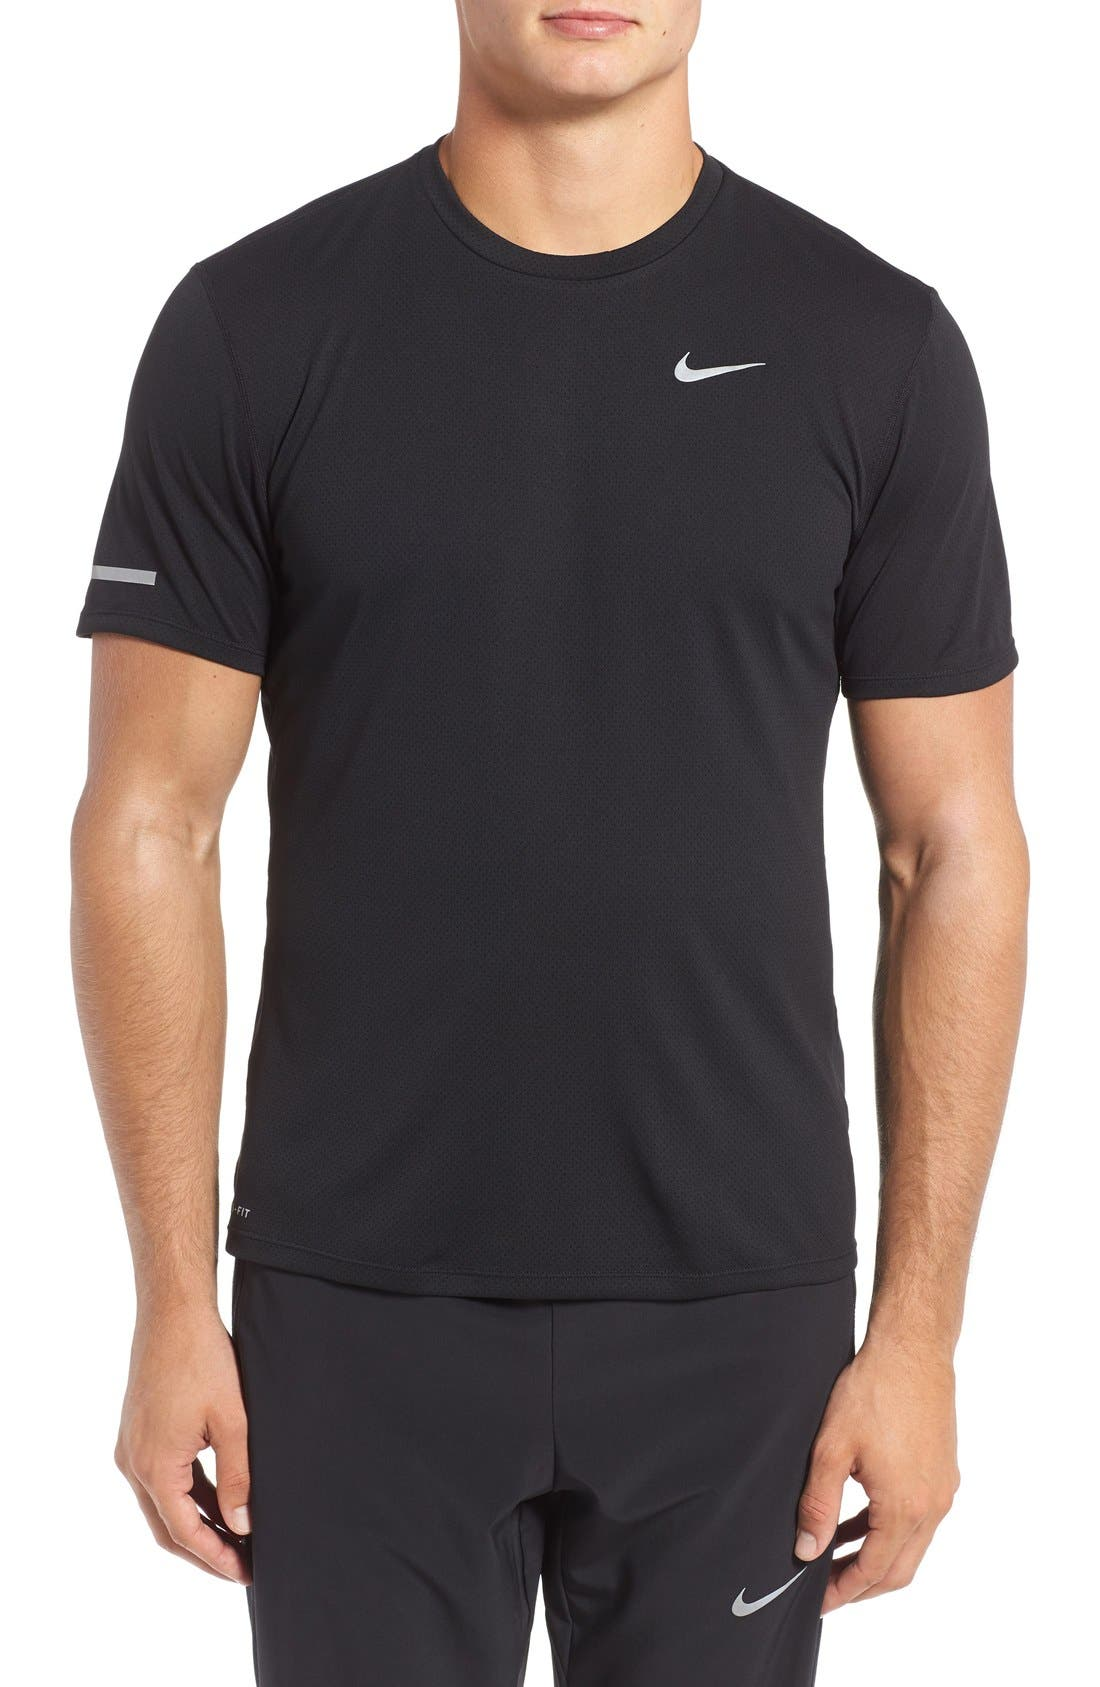 'Contour' Mesh Dri-FIT Running T-Shirt,                             Main thumbnail 1, color,